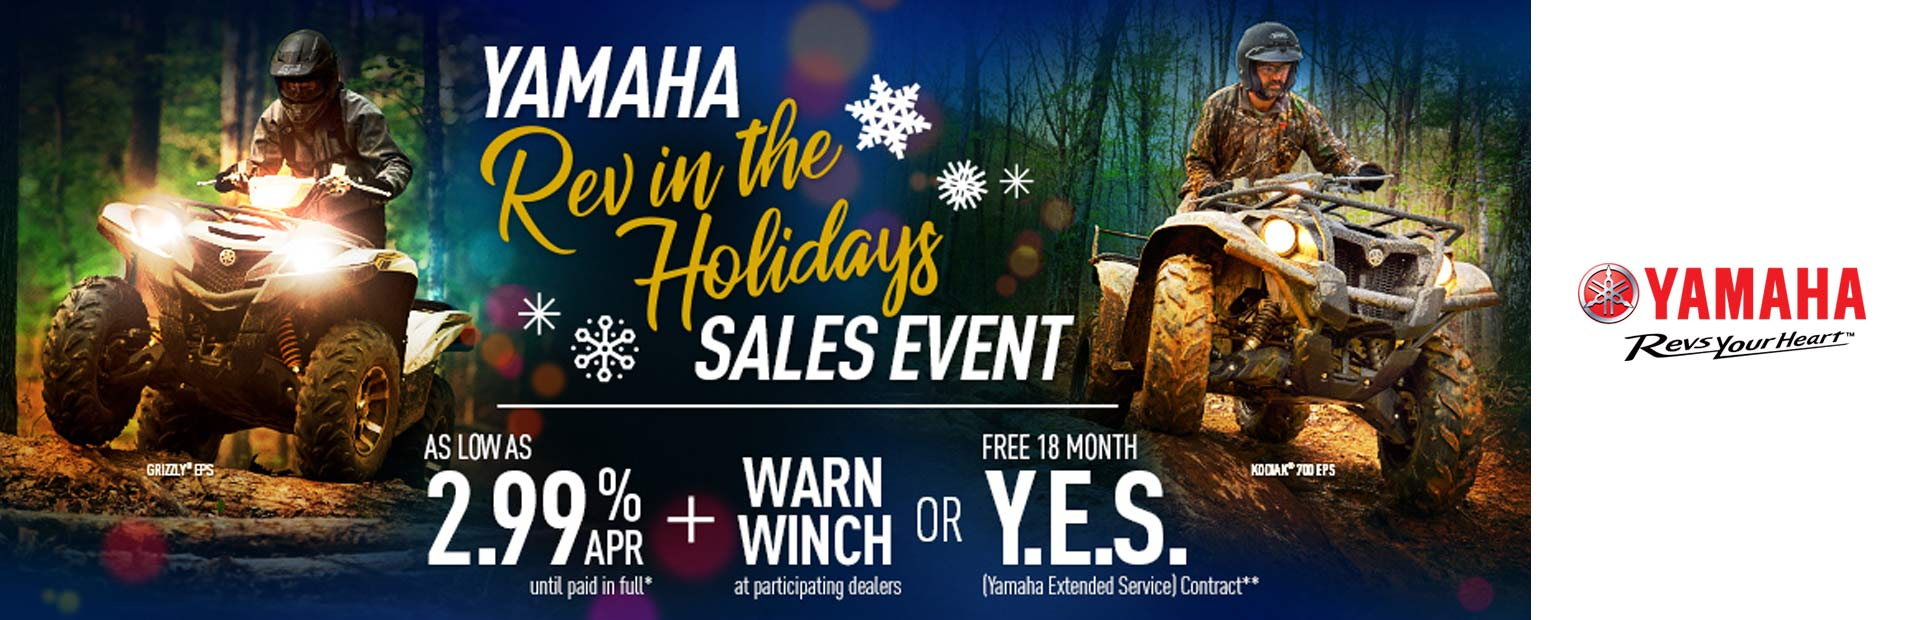 Yamaha: Rev in the Holidays Sales Event (Utility ATV)